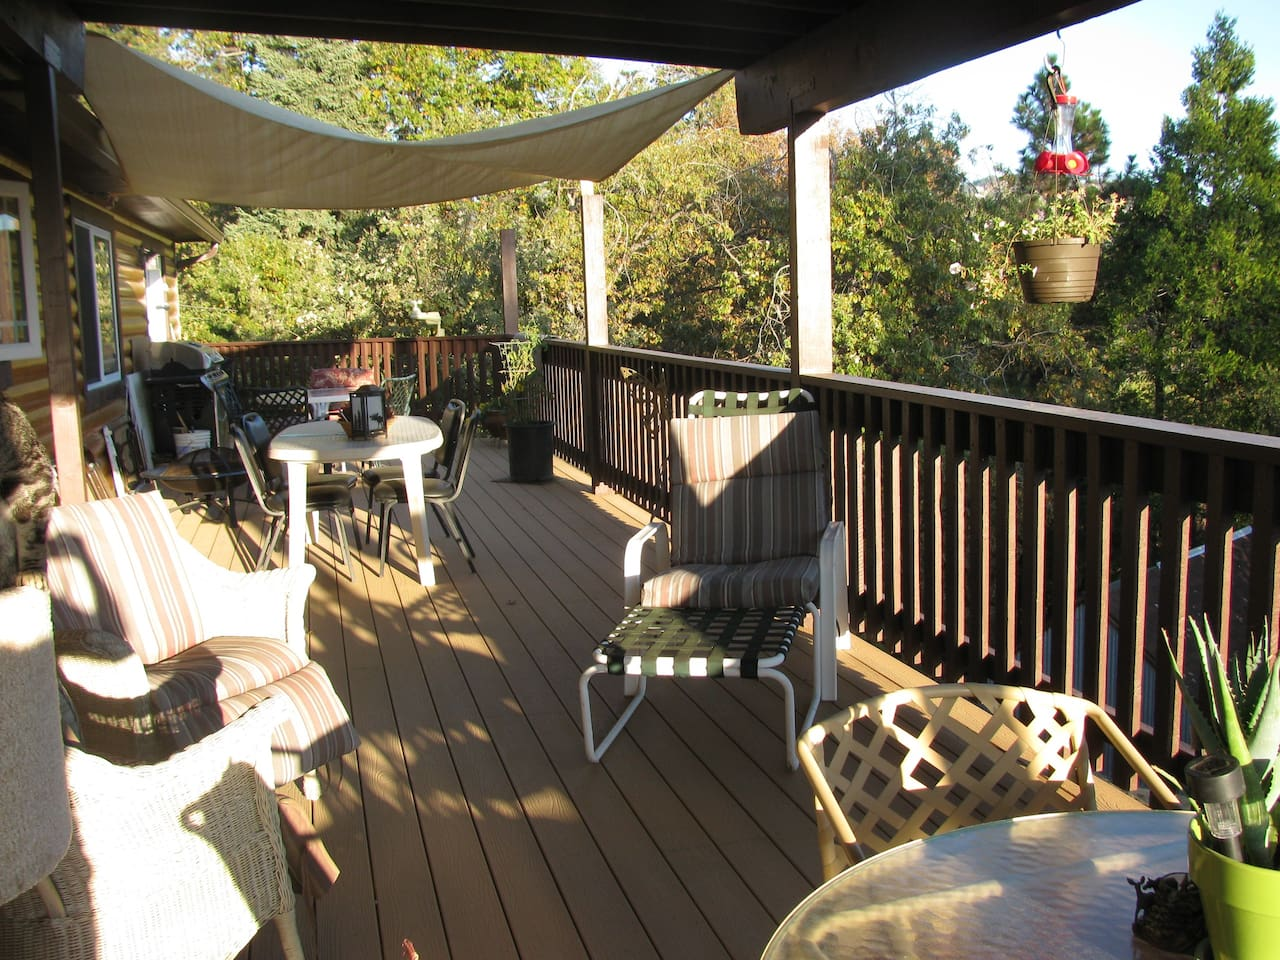 30x12' large deck, , for relaxing and eating